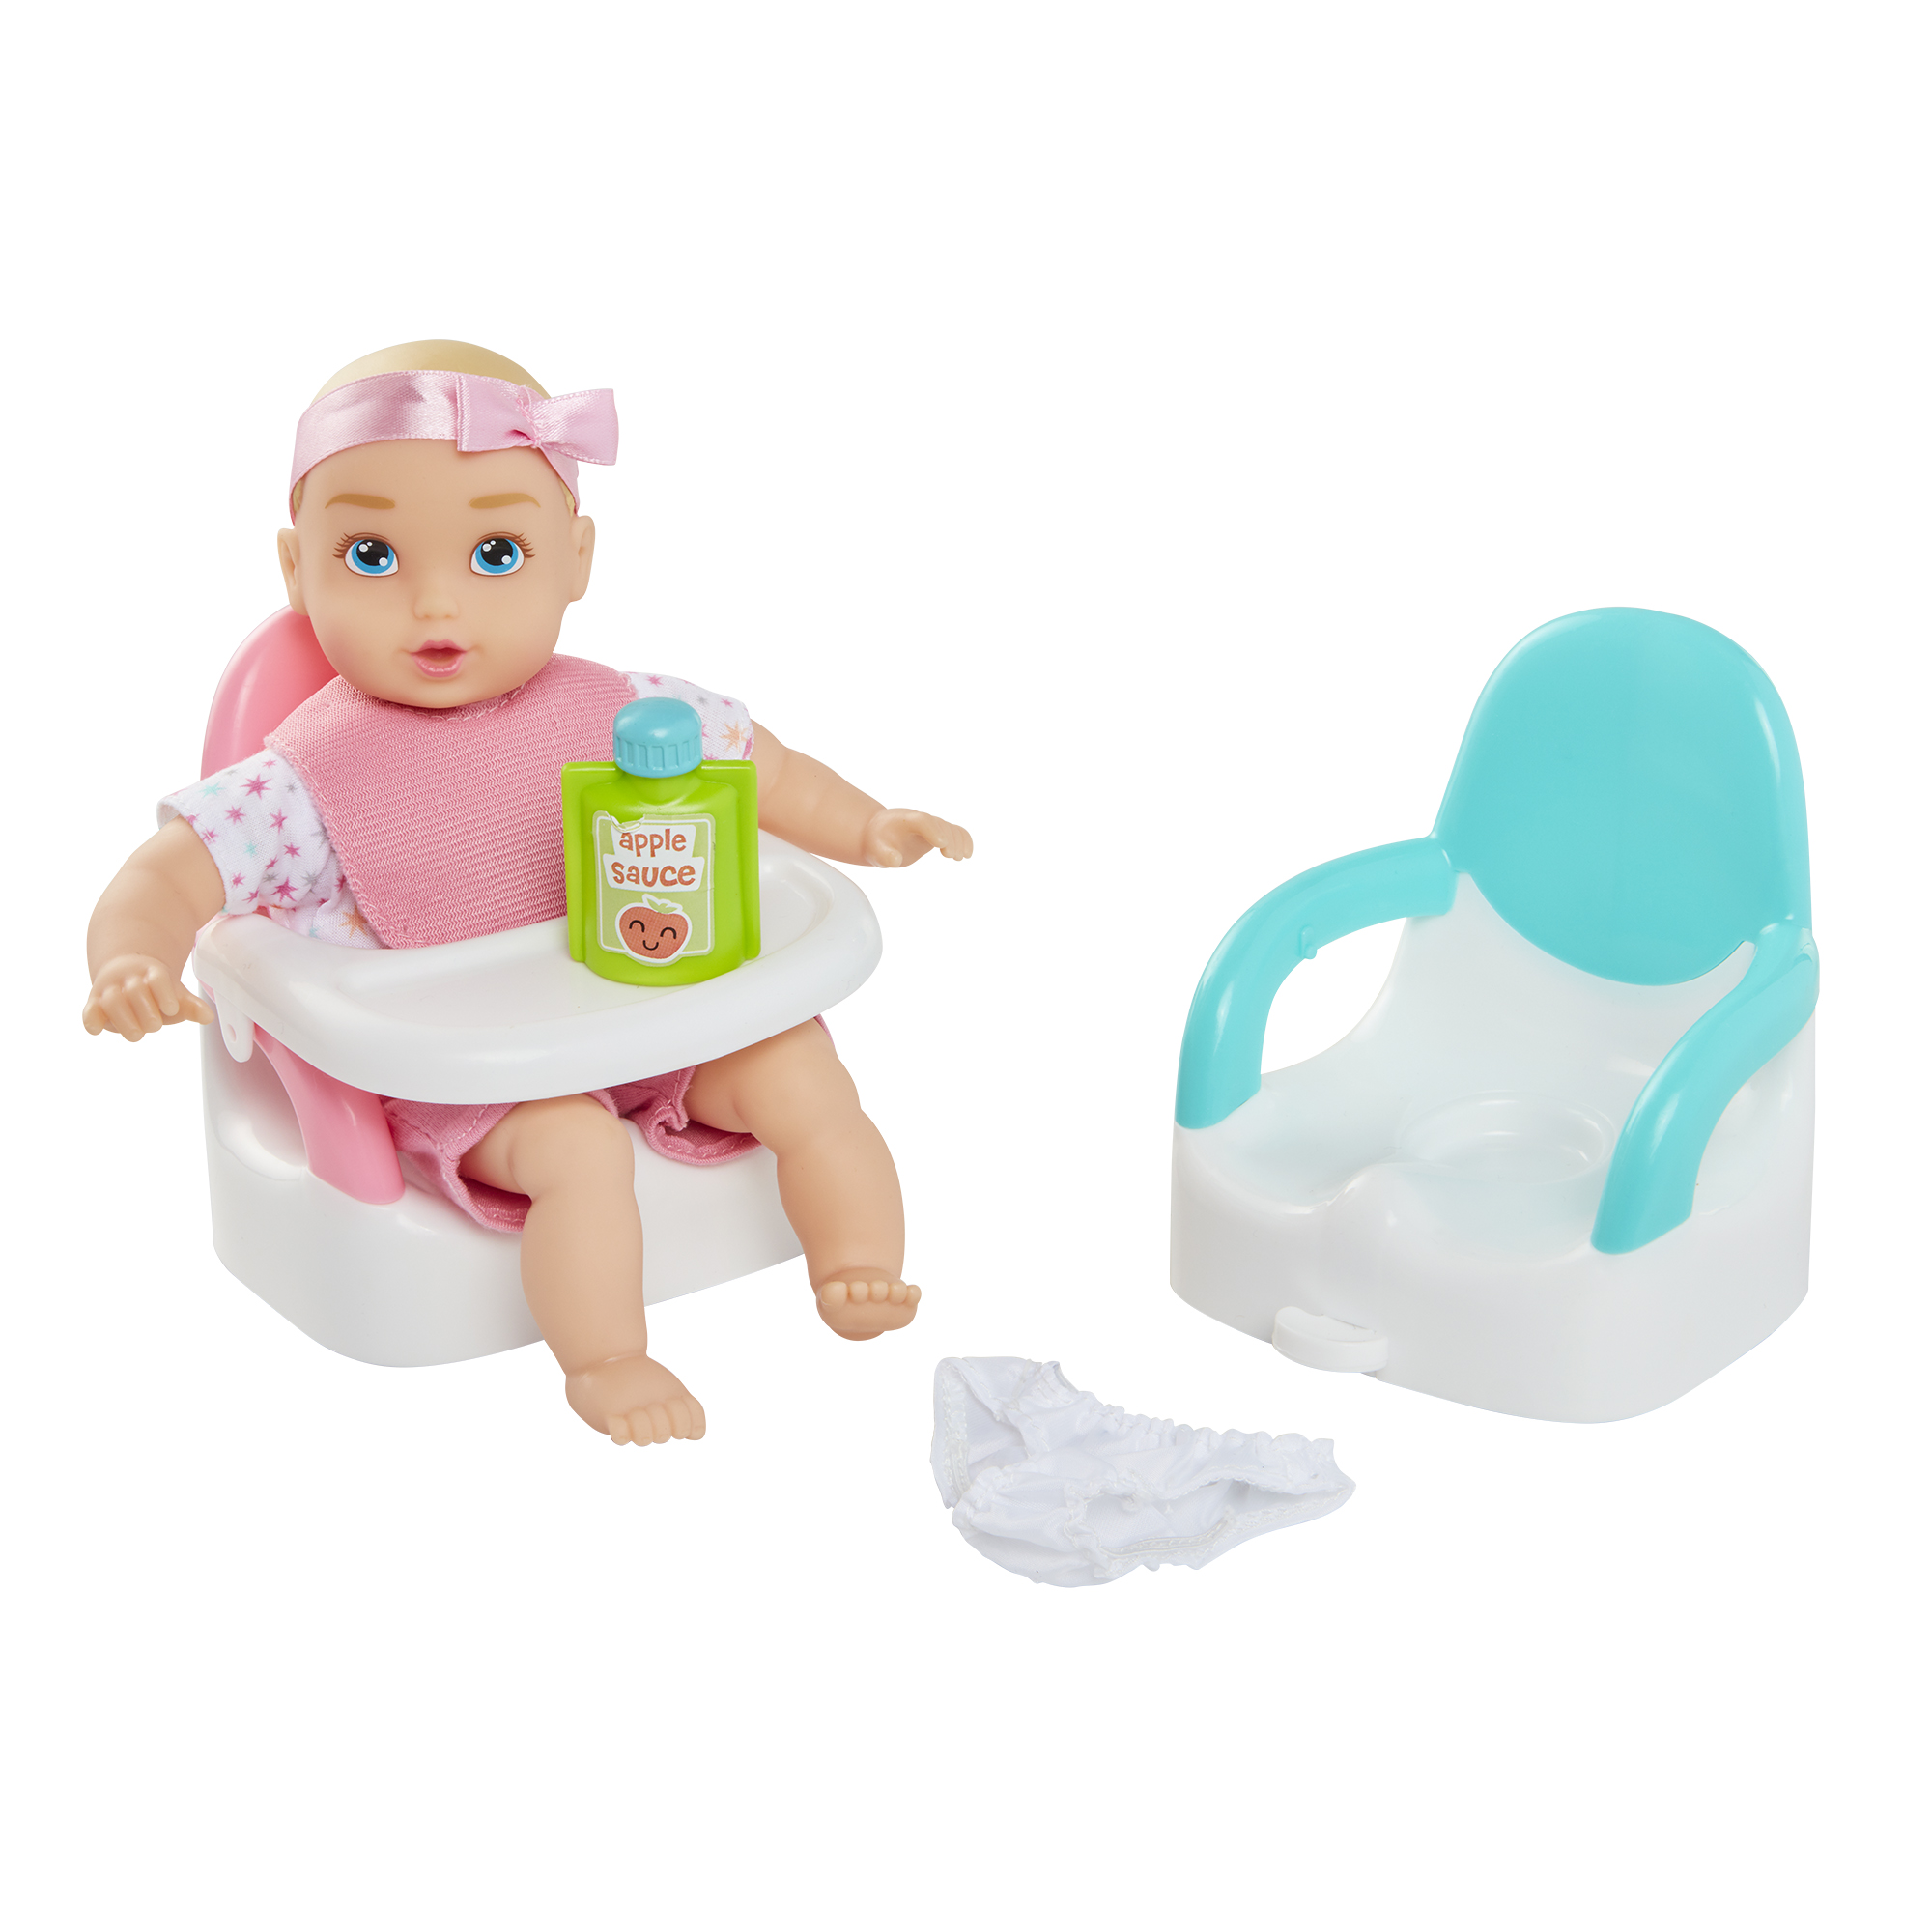 Perfectly Cute Baby Feed & Go Playset With 8 inch My Lil' Baby Girl Doll